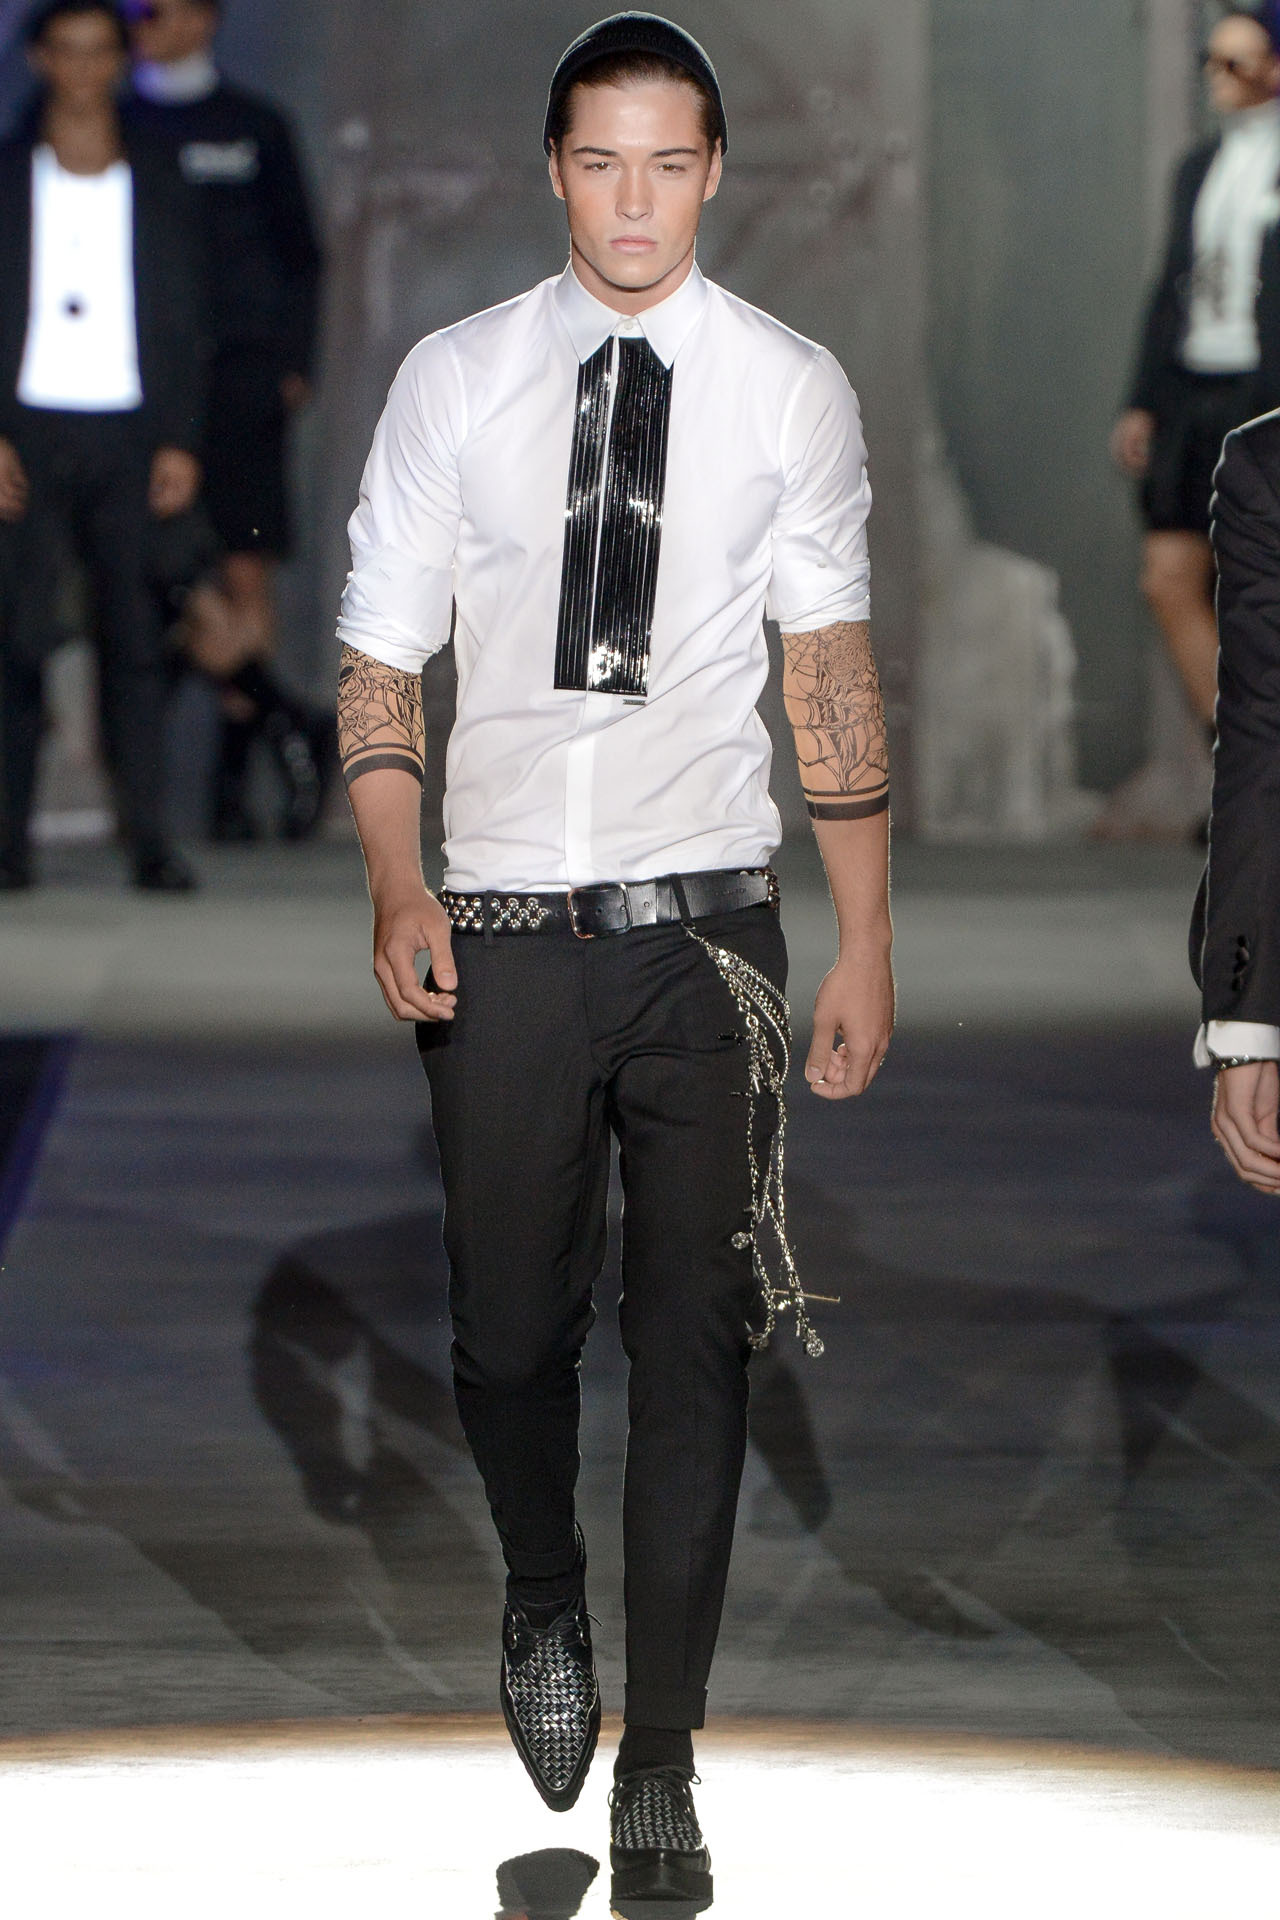 Francisco Lachowski for DSquared2 SS 2013